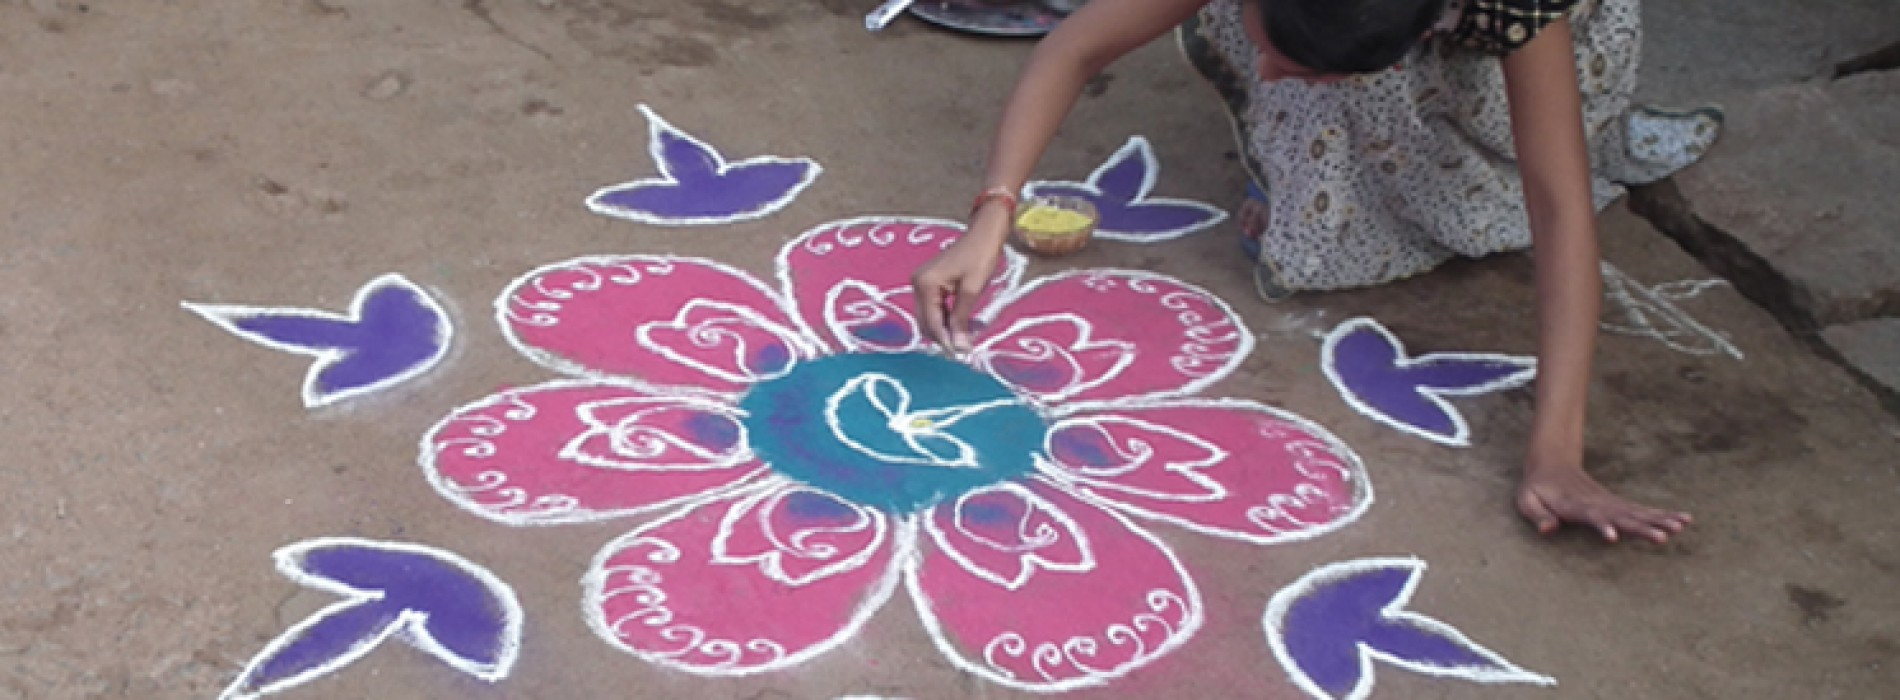 Diwali Celebrations in Different Regions of India